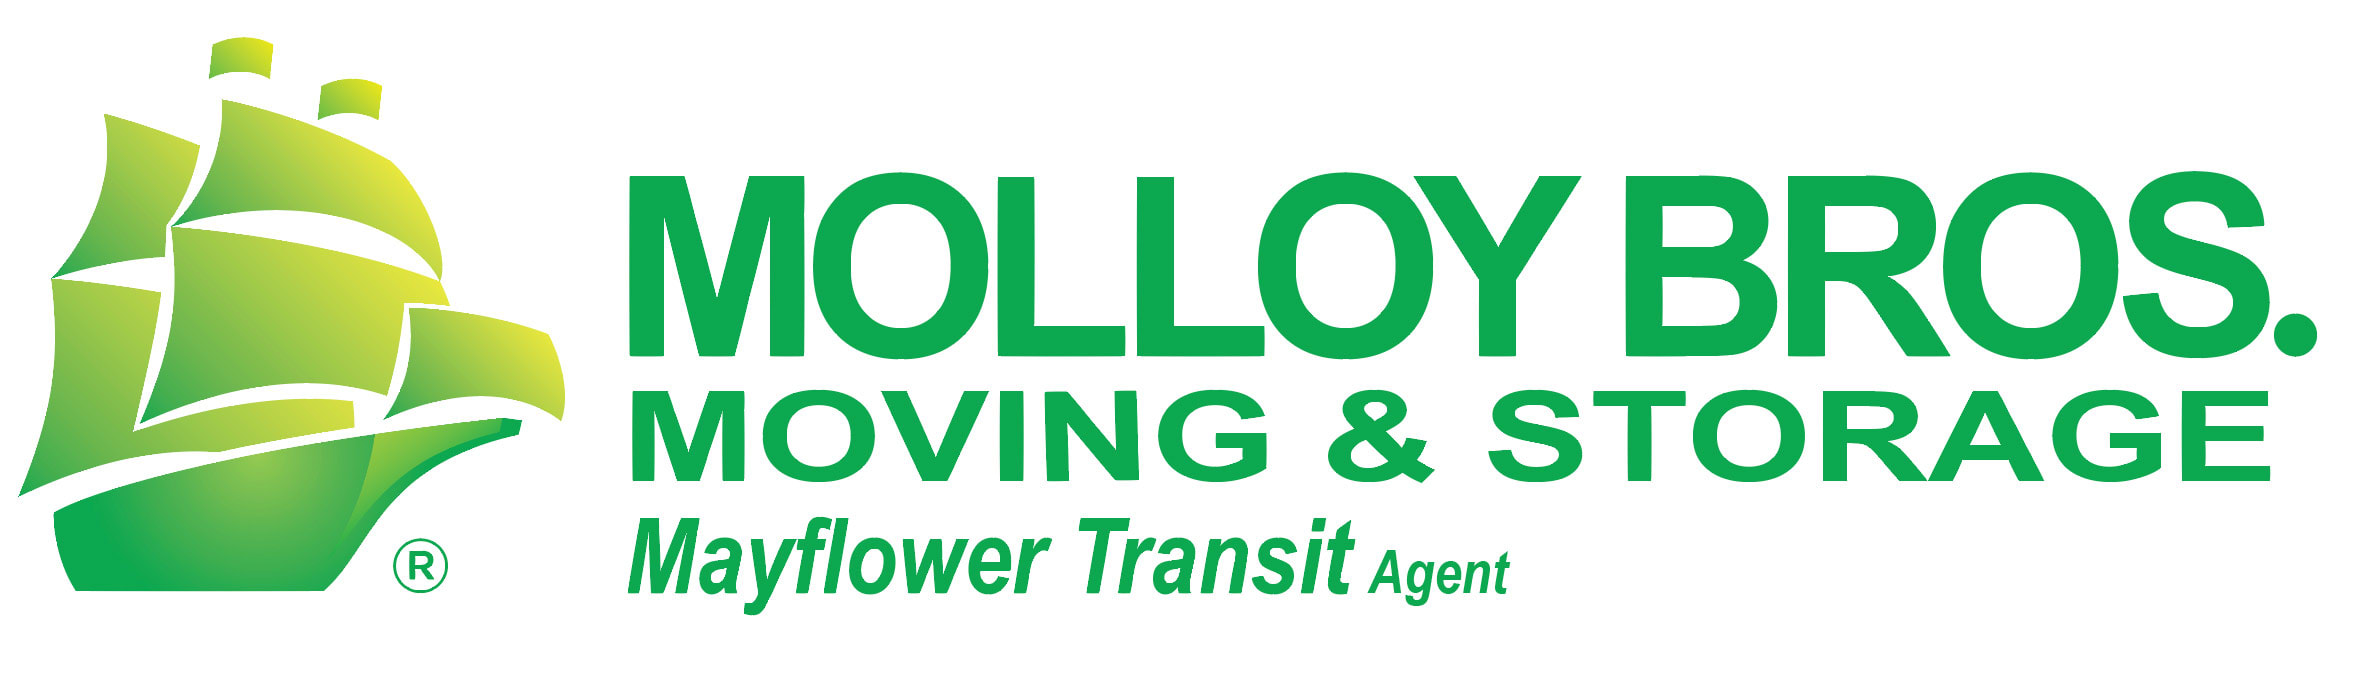 Molloy Bros. Moving & Storage Logo